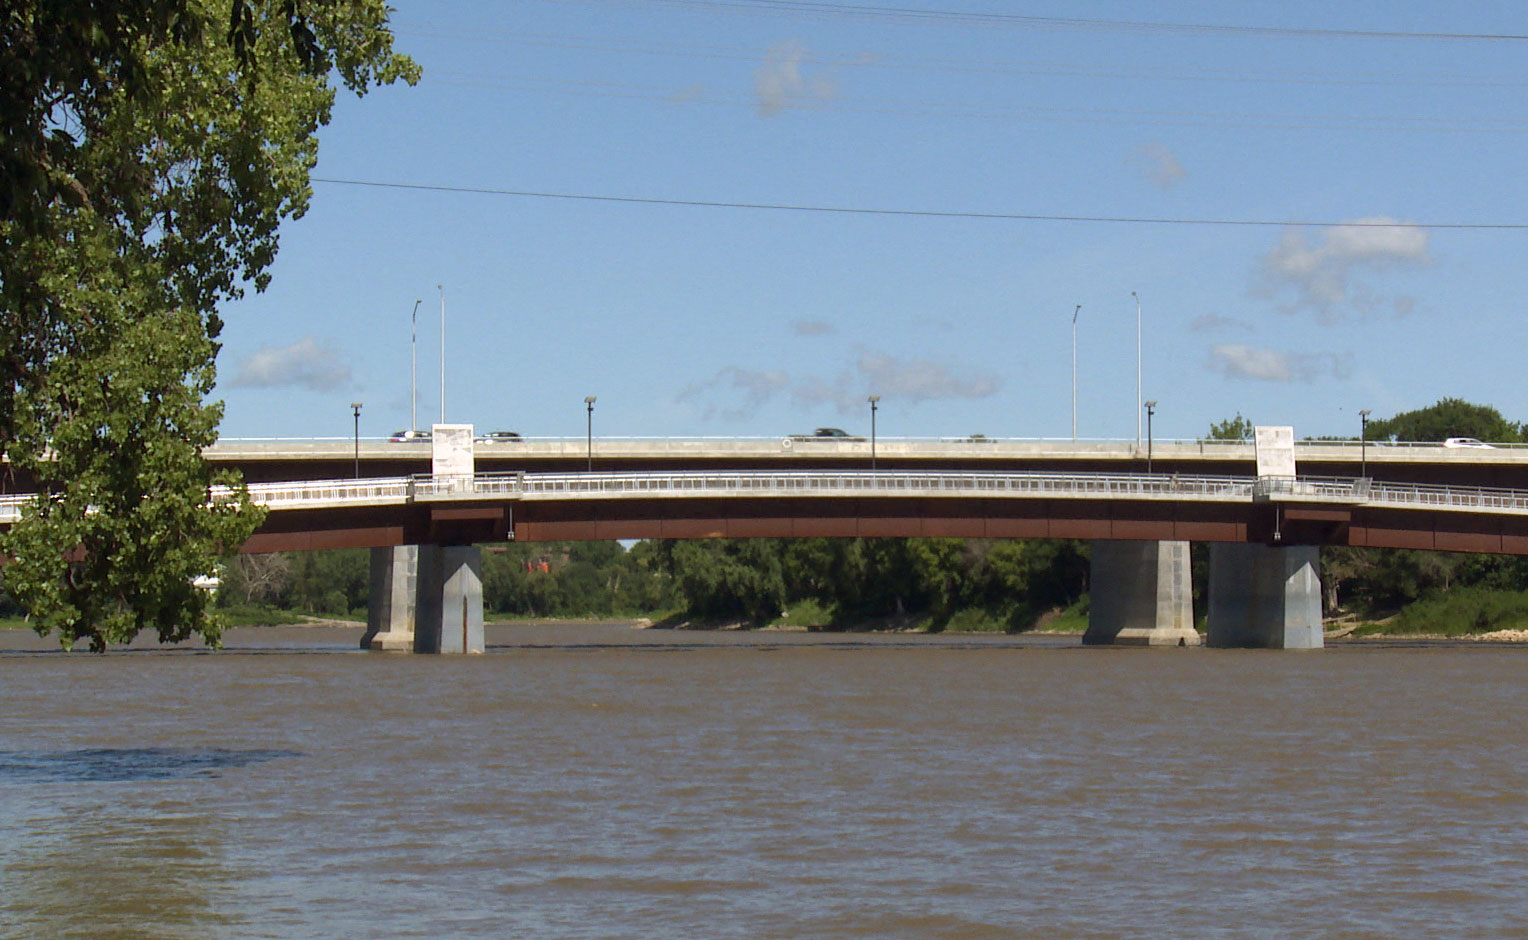 Disraeli Active Transportation Bridge is the Canadian Public Works Association 2014 Transportation Project of the Year